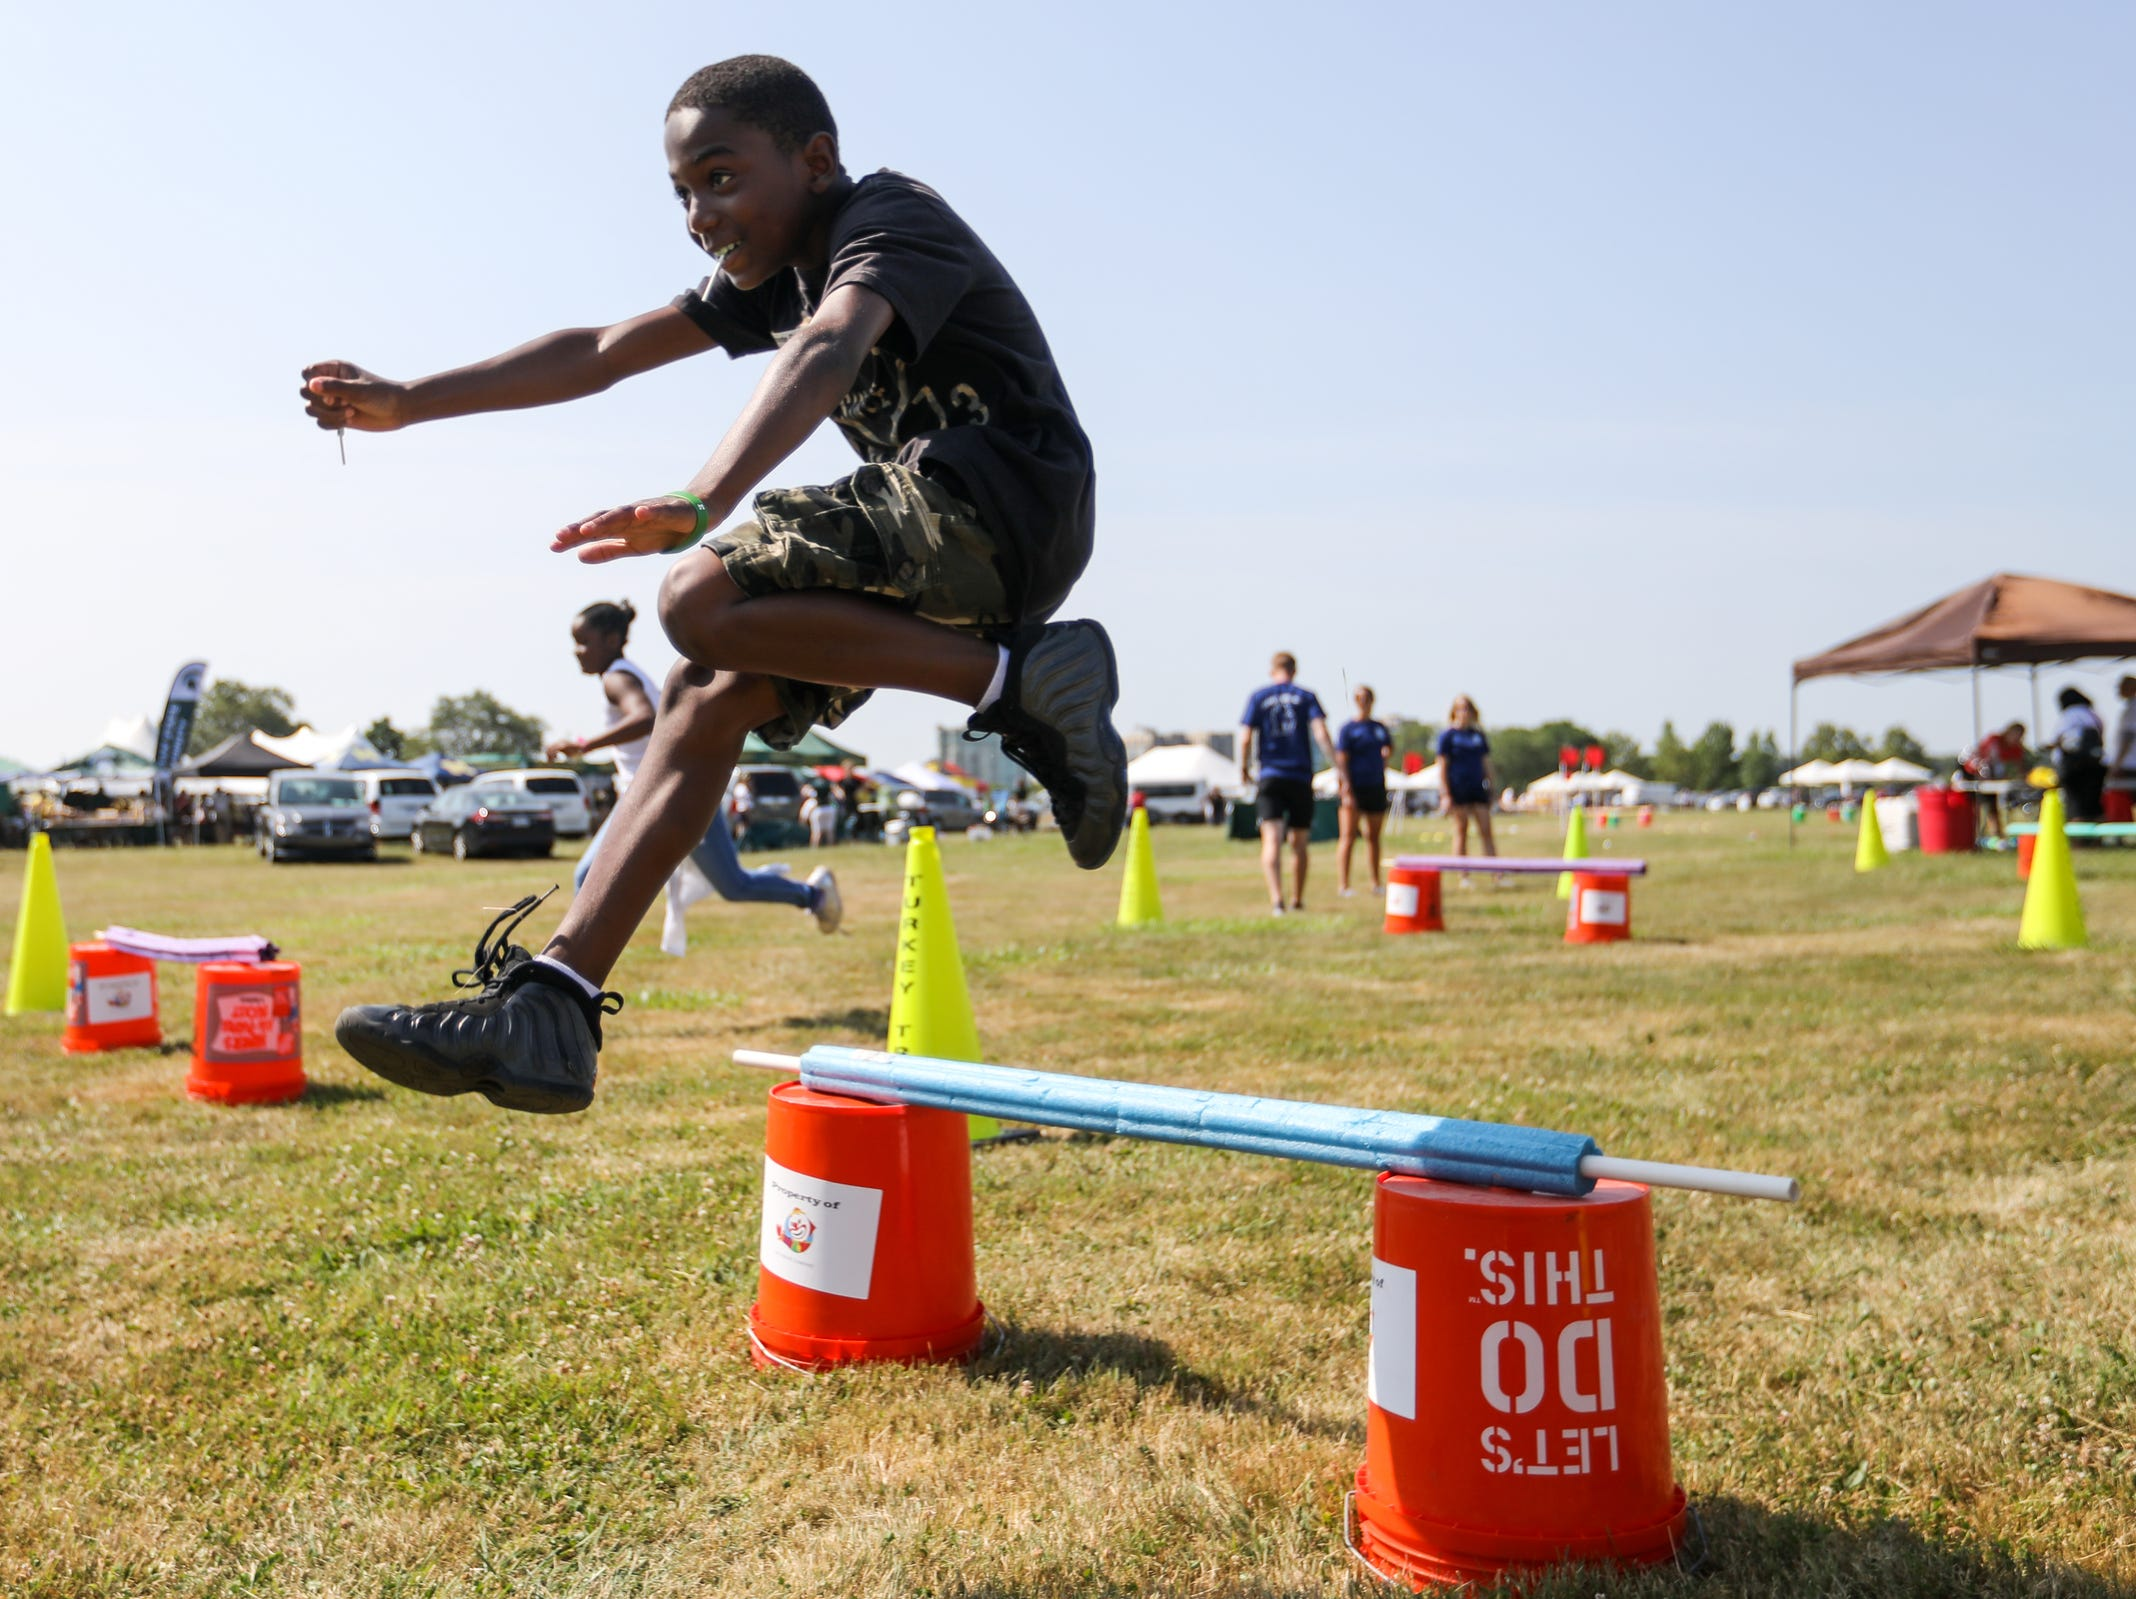 Dishonte Dixon, 11, from George Washington Carver Academy runs a relay race during Metro Detroit Youth Day at Belle Isle in Detroit on Wednesday, July 11, 2018.